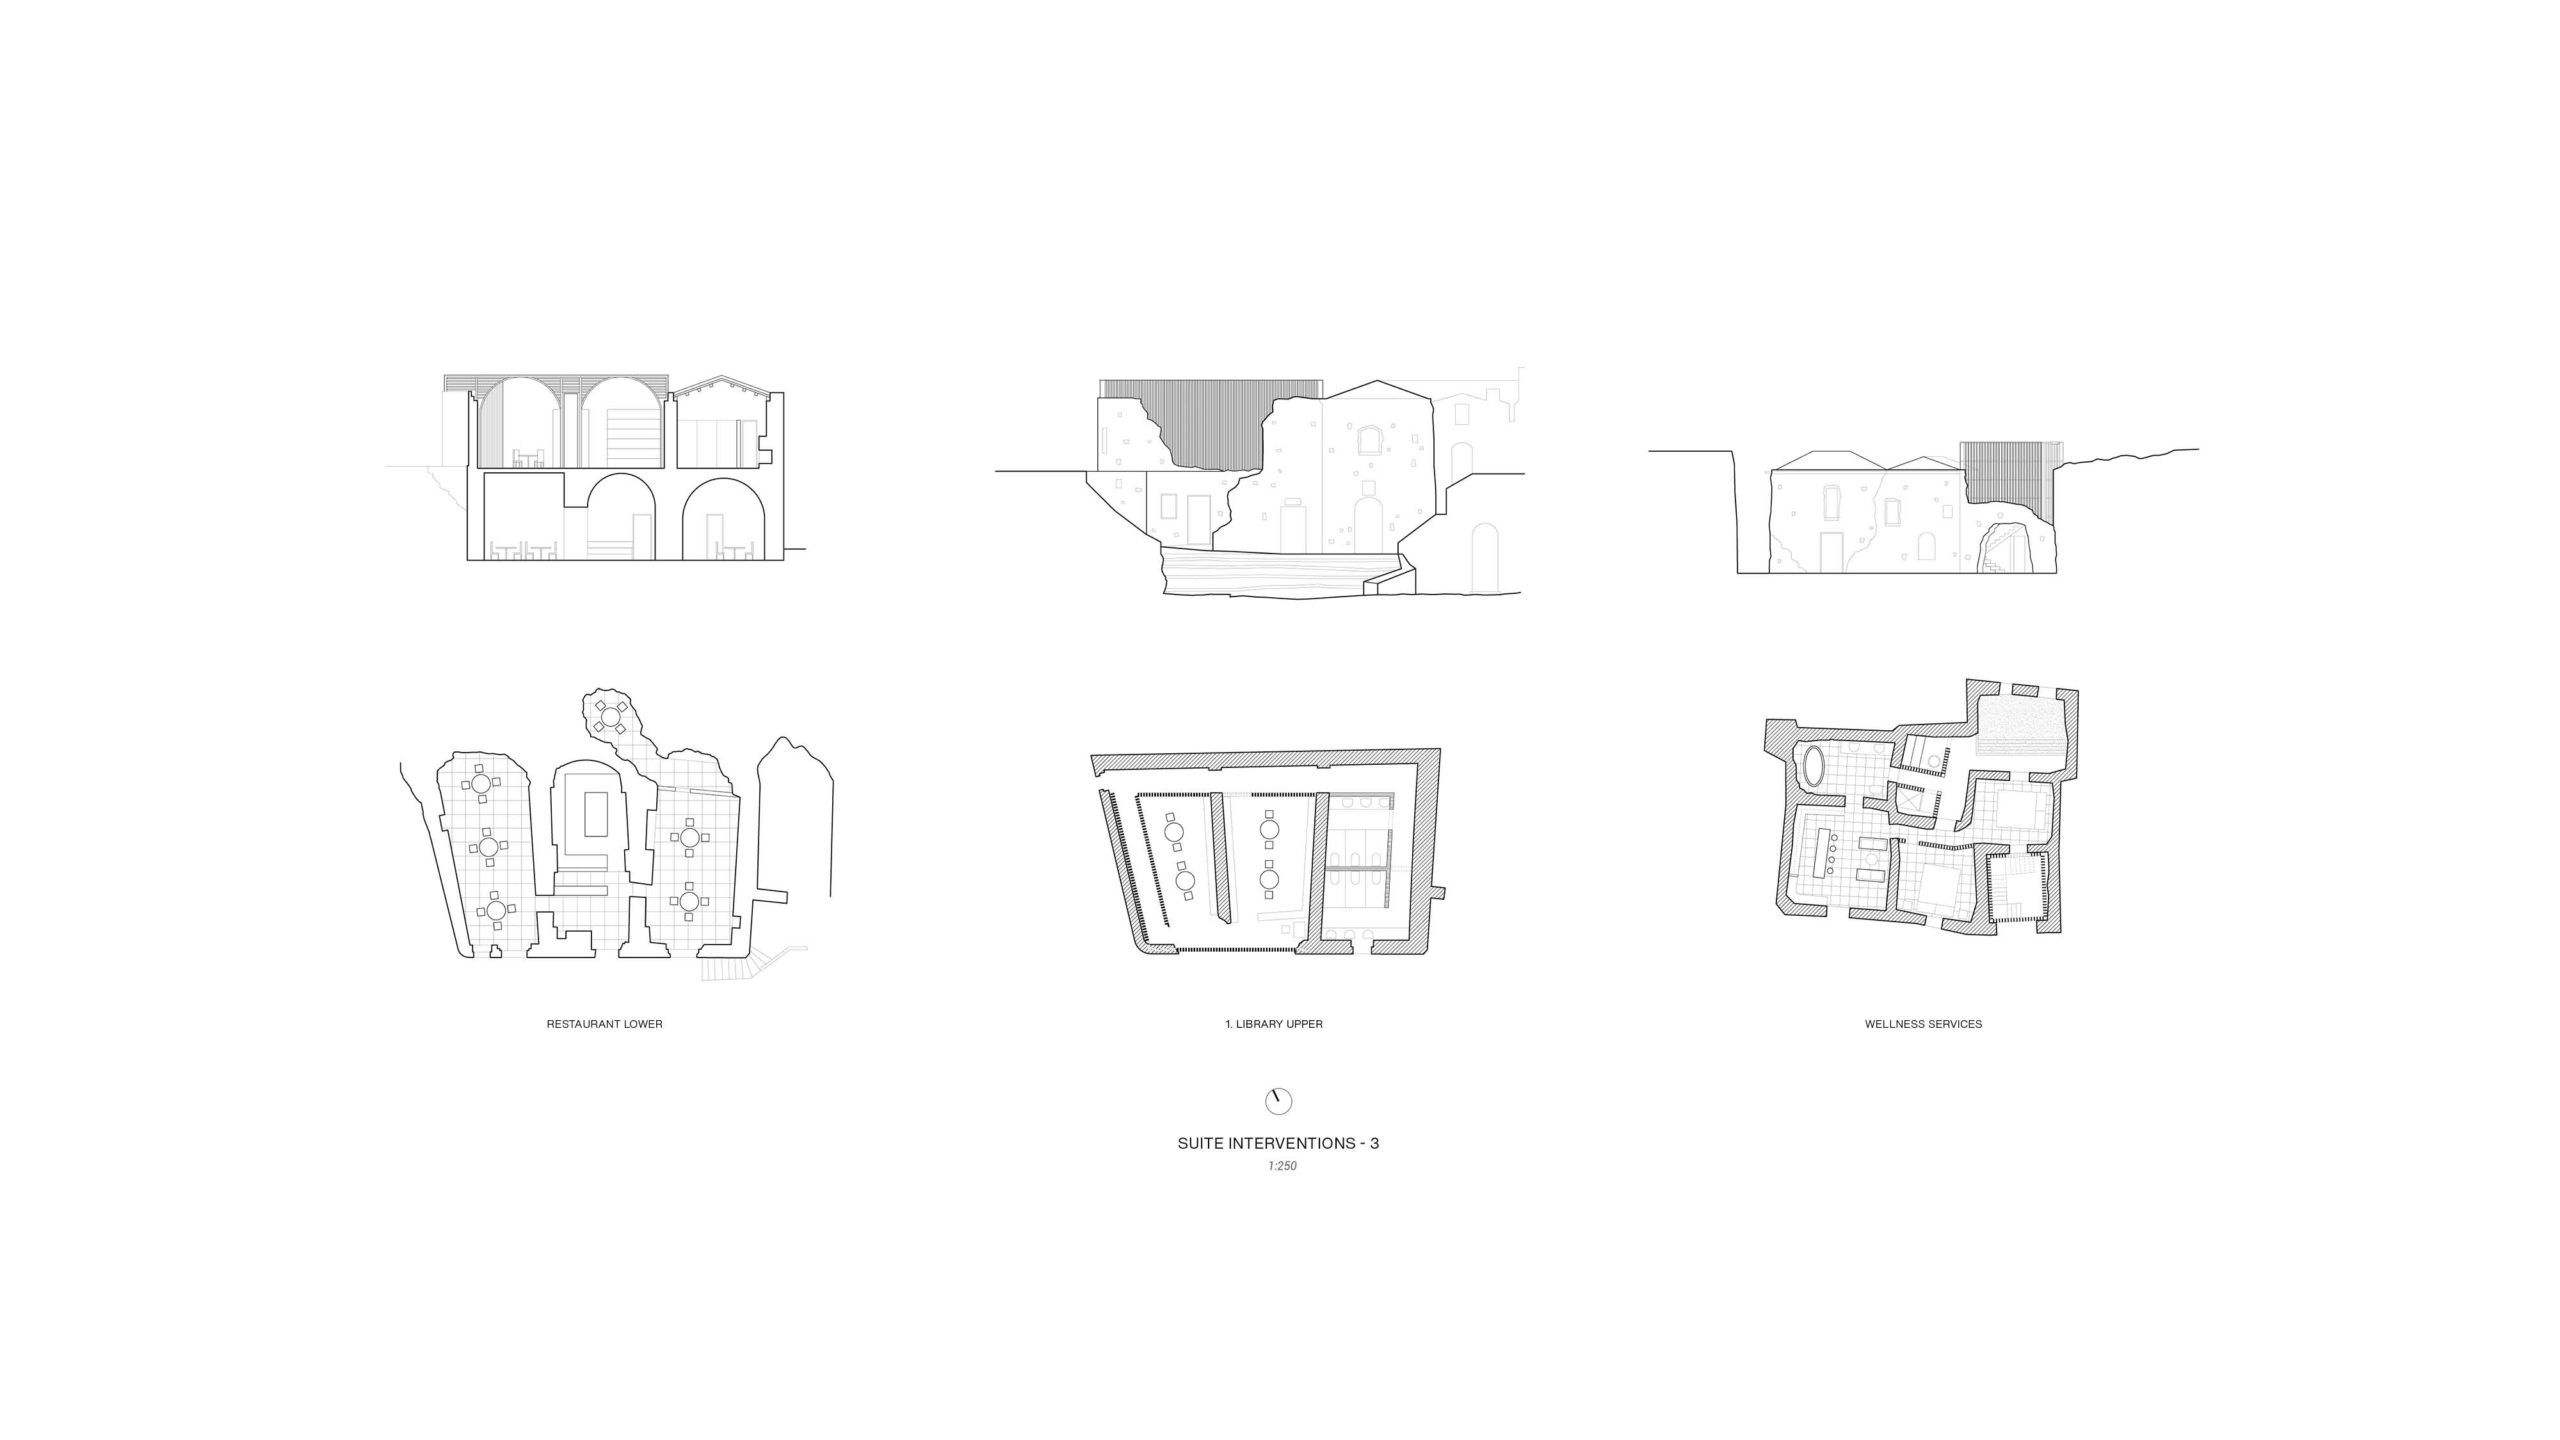 Unbuilt : TRACES - GHOST TOWN REFUGE, at Craco, Italy, by Claudio C. Araya, Yahya Abdullah 50